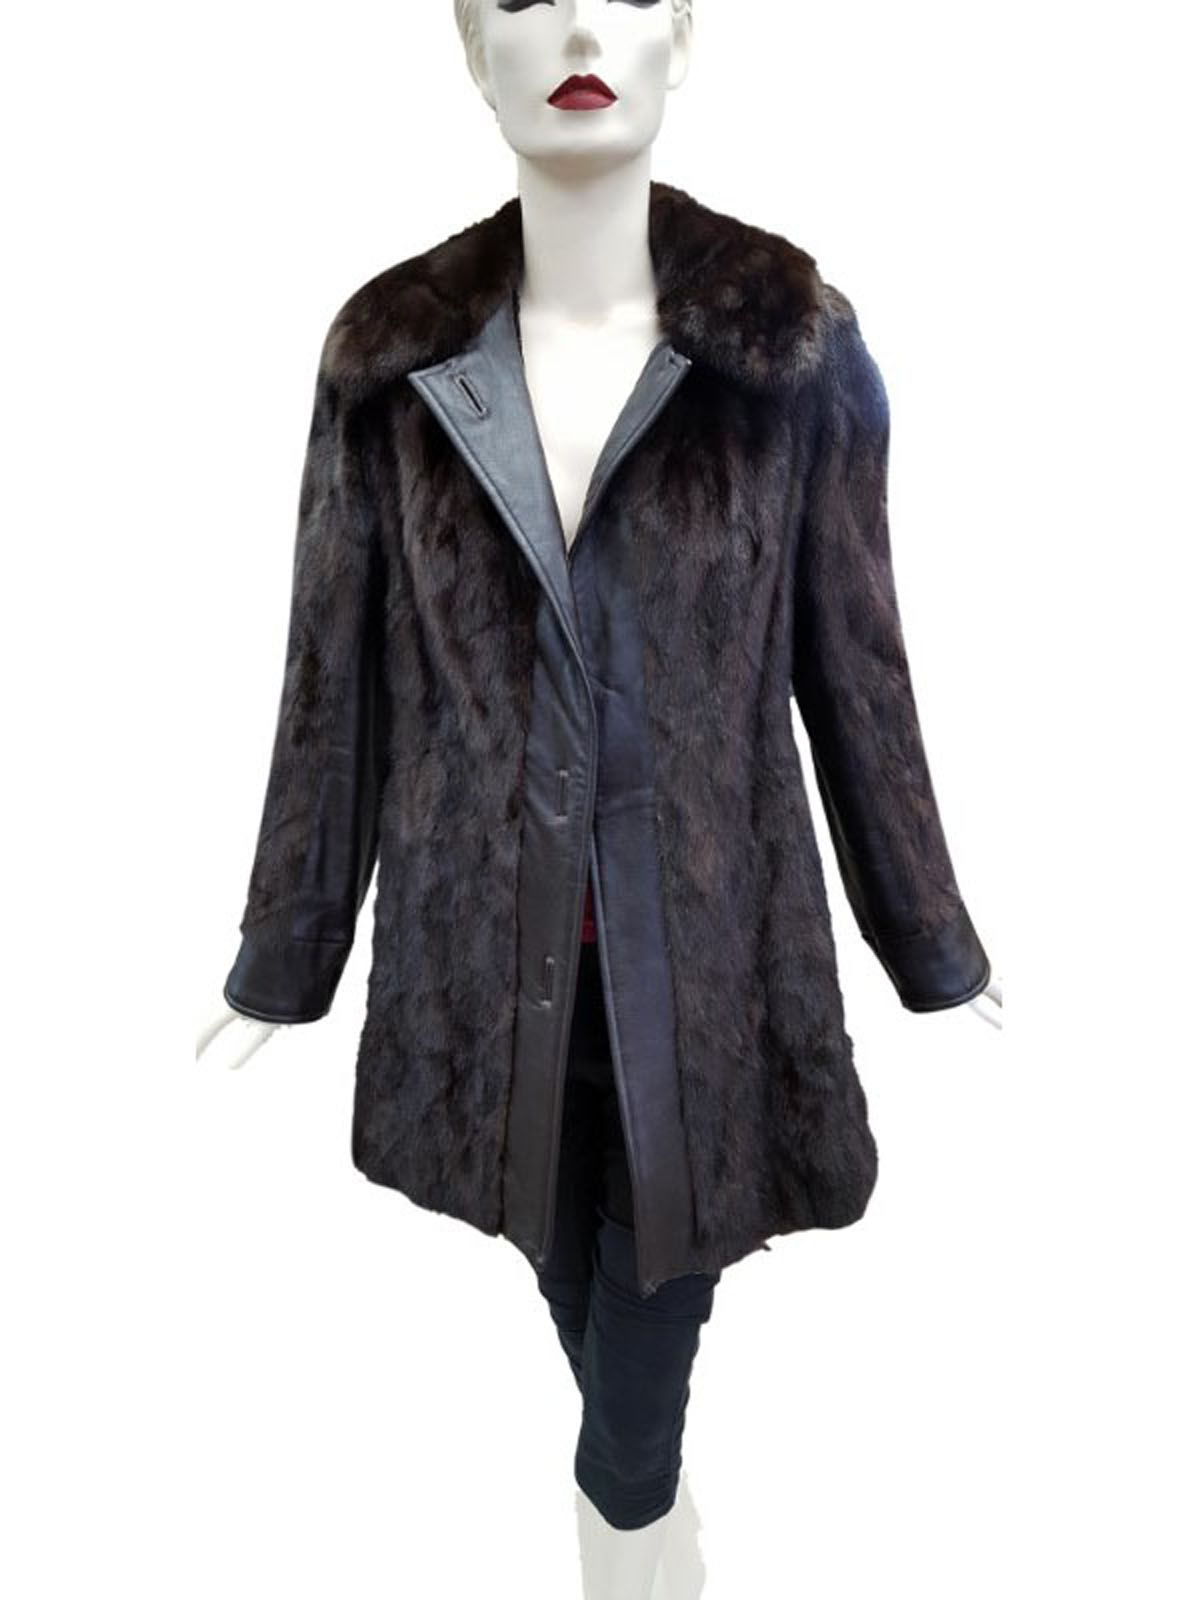 NEW Mahogany Mink Sides Jacket with Leather Trim